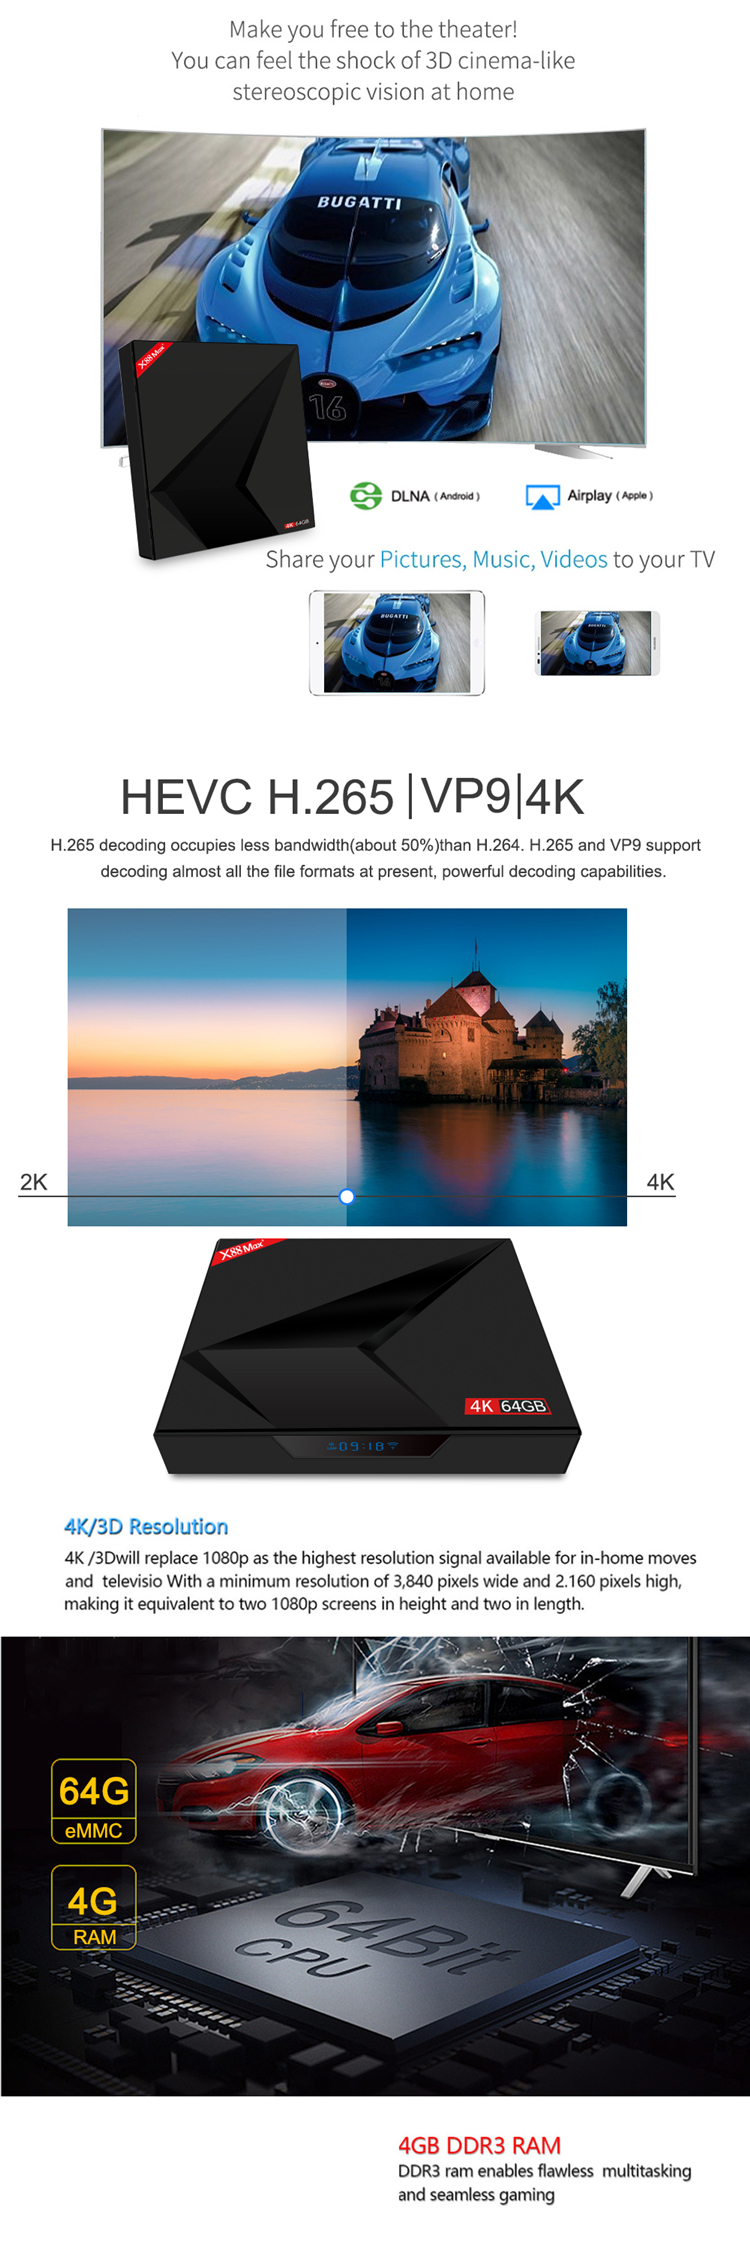 BT 4.0 hd video rockchip tv box x88 max+ rk3328 4G 32G 4k tv box video android 9.0 hd wifi kd player 18.0 set top box